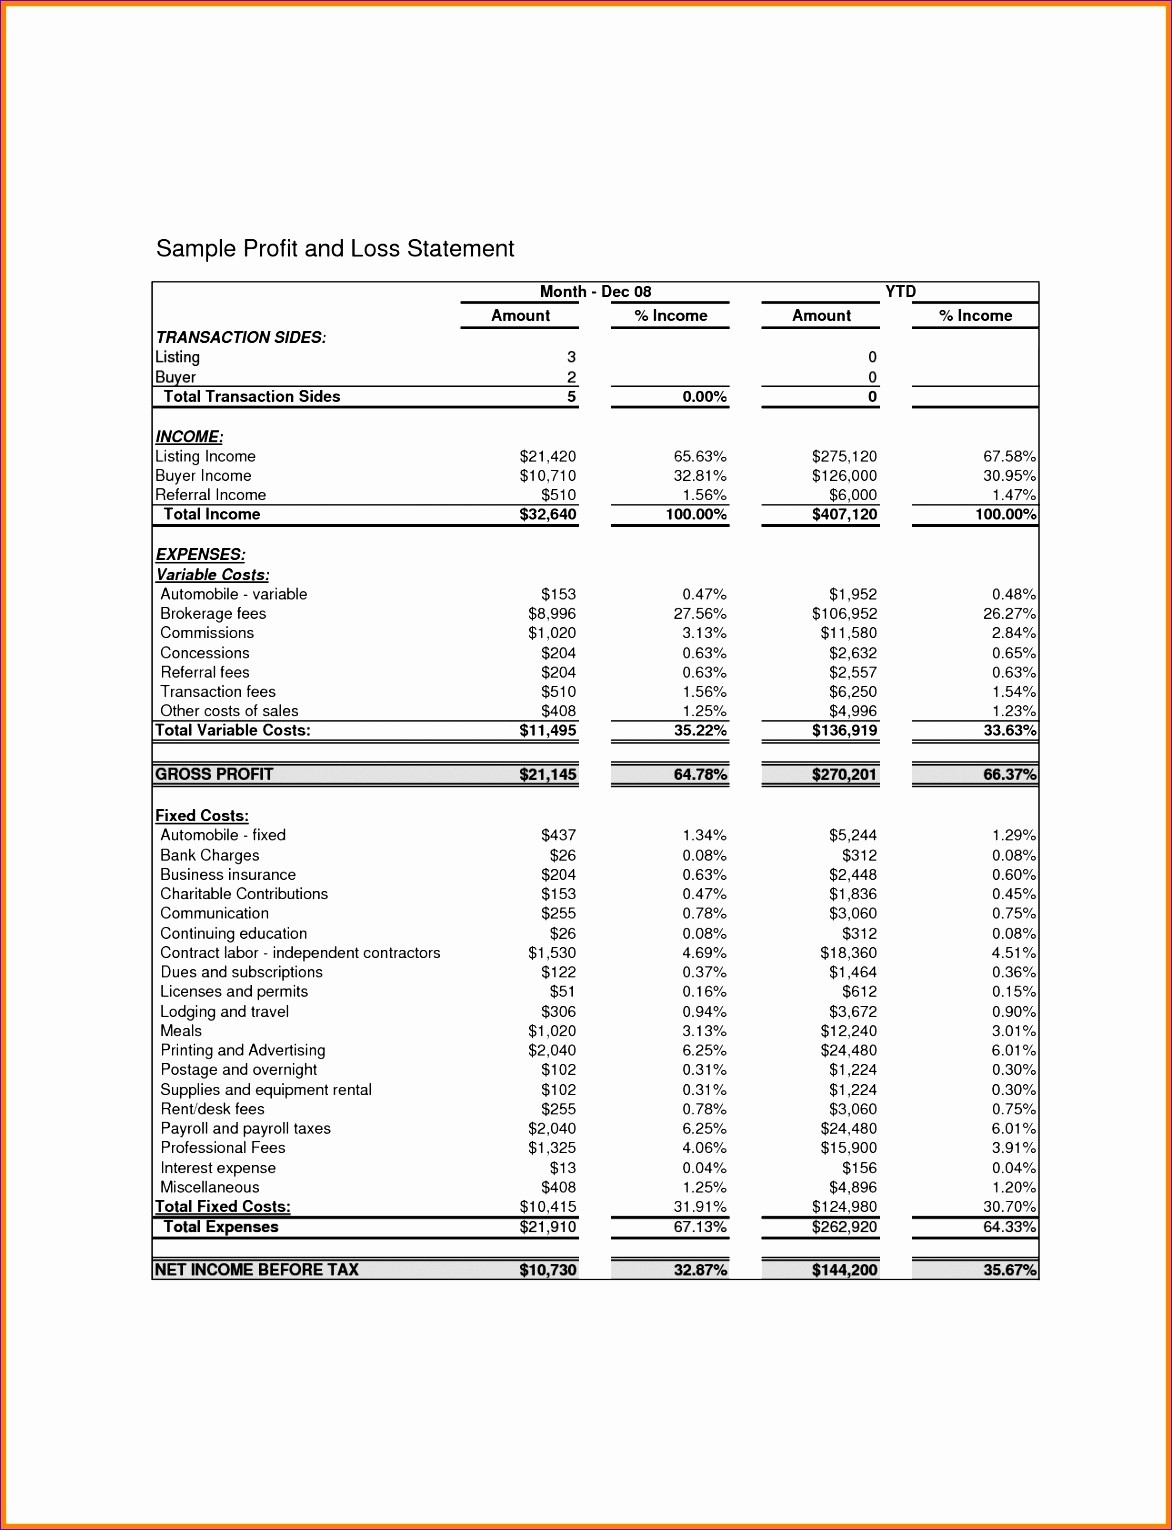 Sample Profit Loss Statement Excel Inspirational 6 Business Financial Statement Template Excel